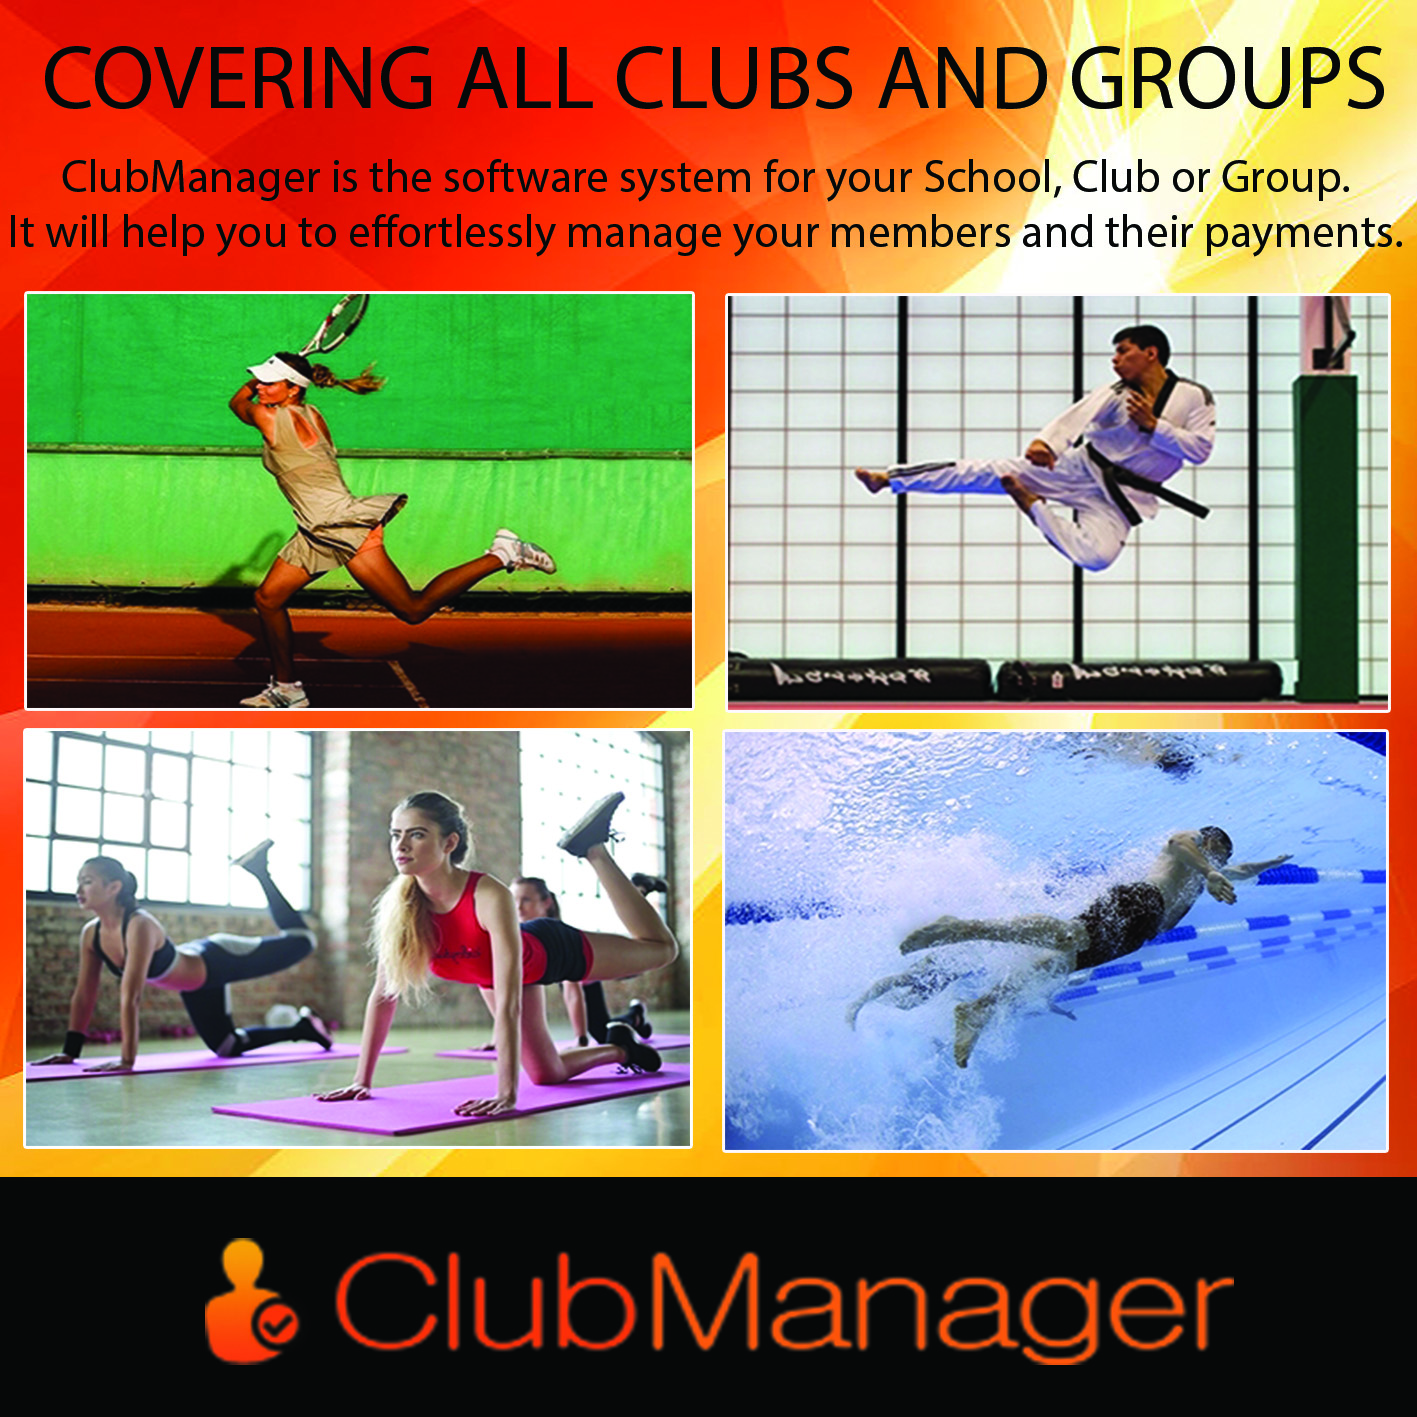 clubmanager-software-image-2